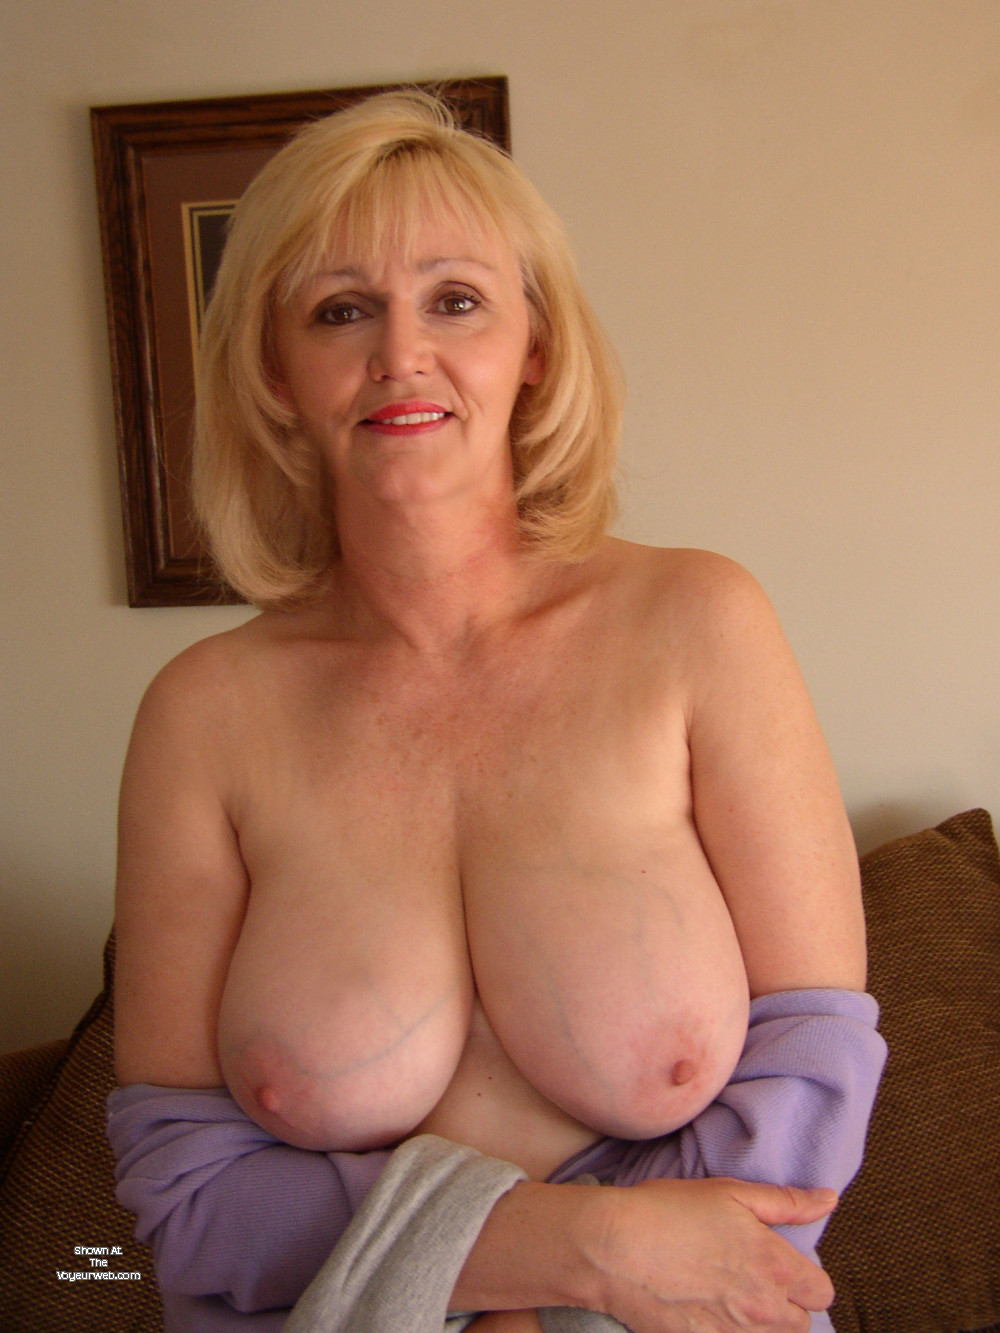 Very Large Tits Of My Wife - Sandy - July, 2017 - Voyeur Web-5680